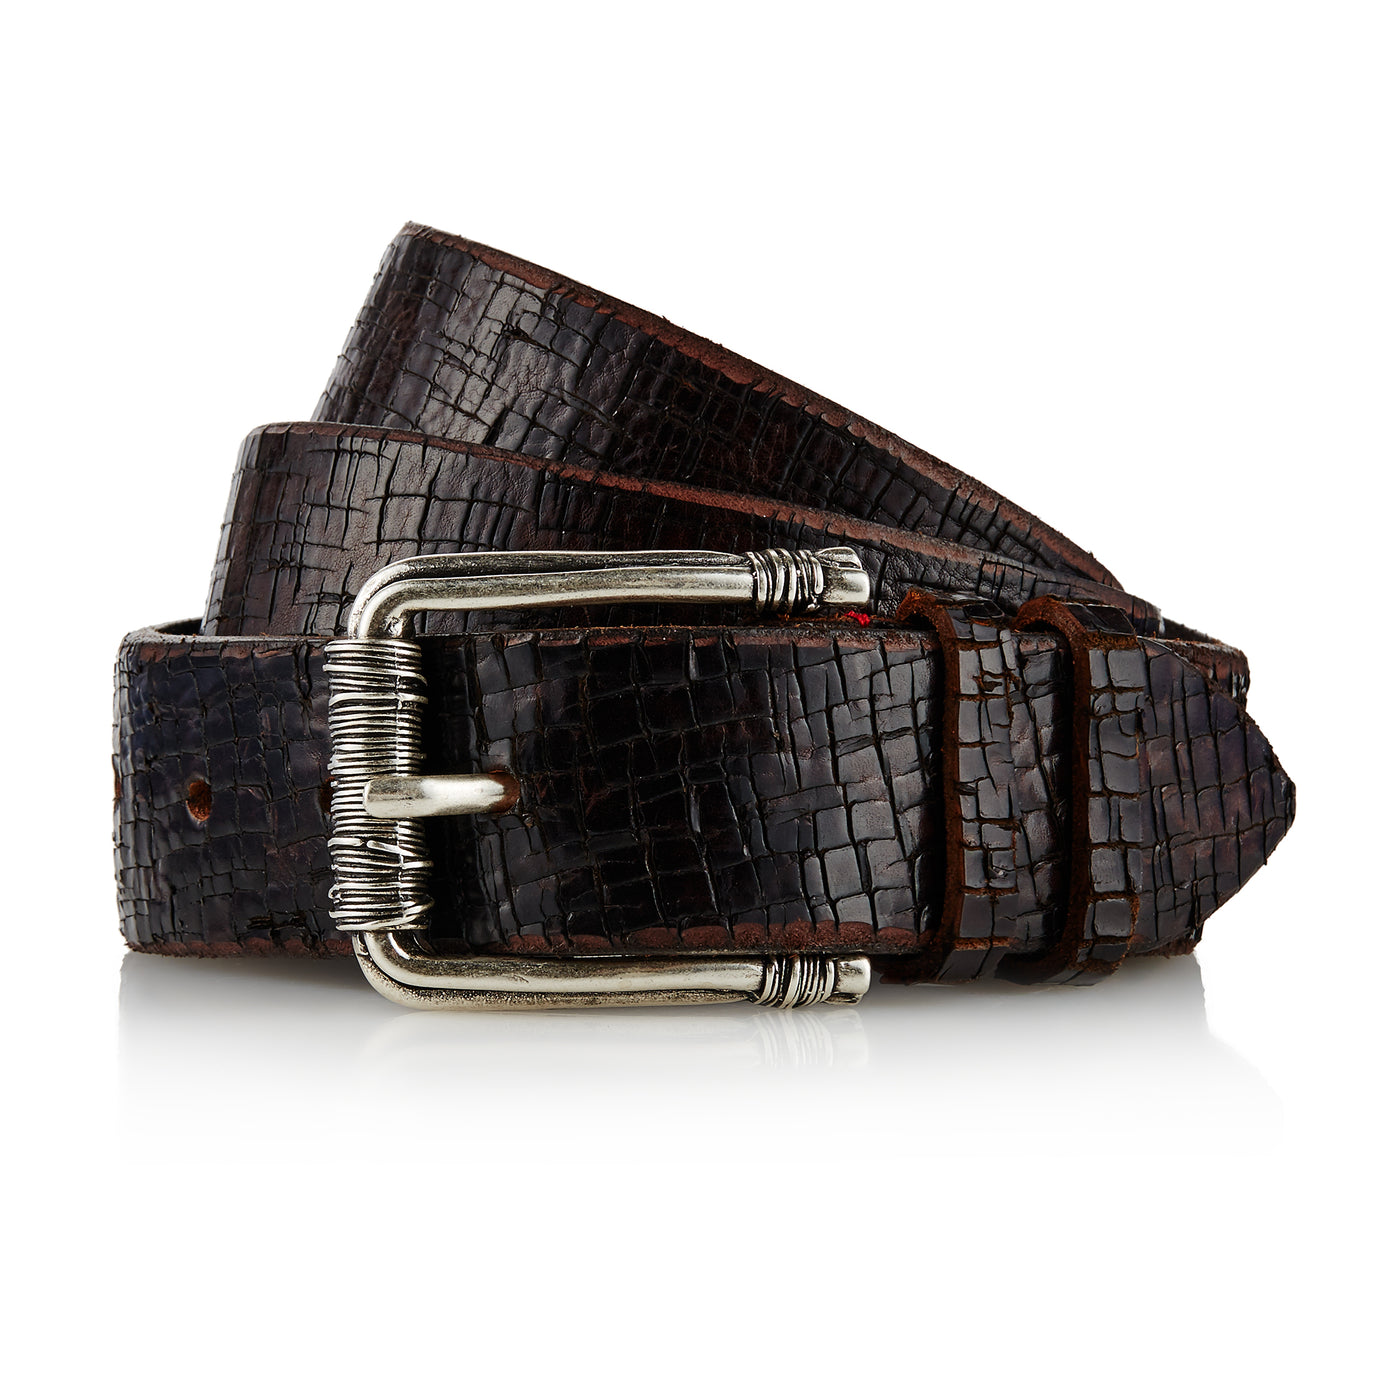 San - Handcrafted Italian Belt / Dark Brown